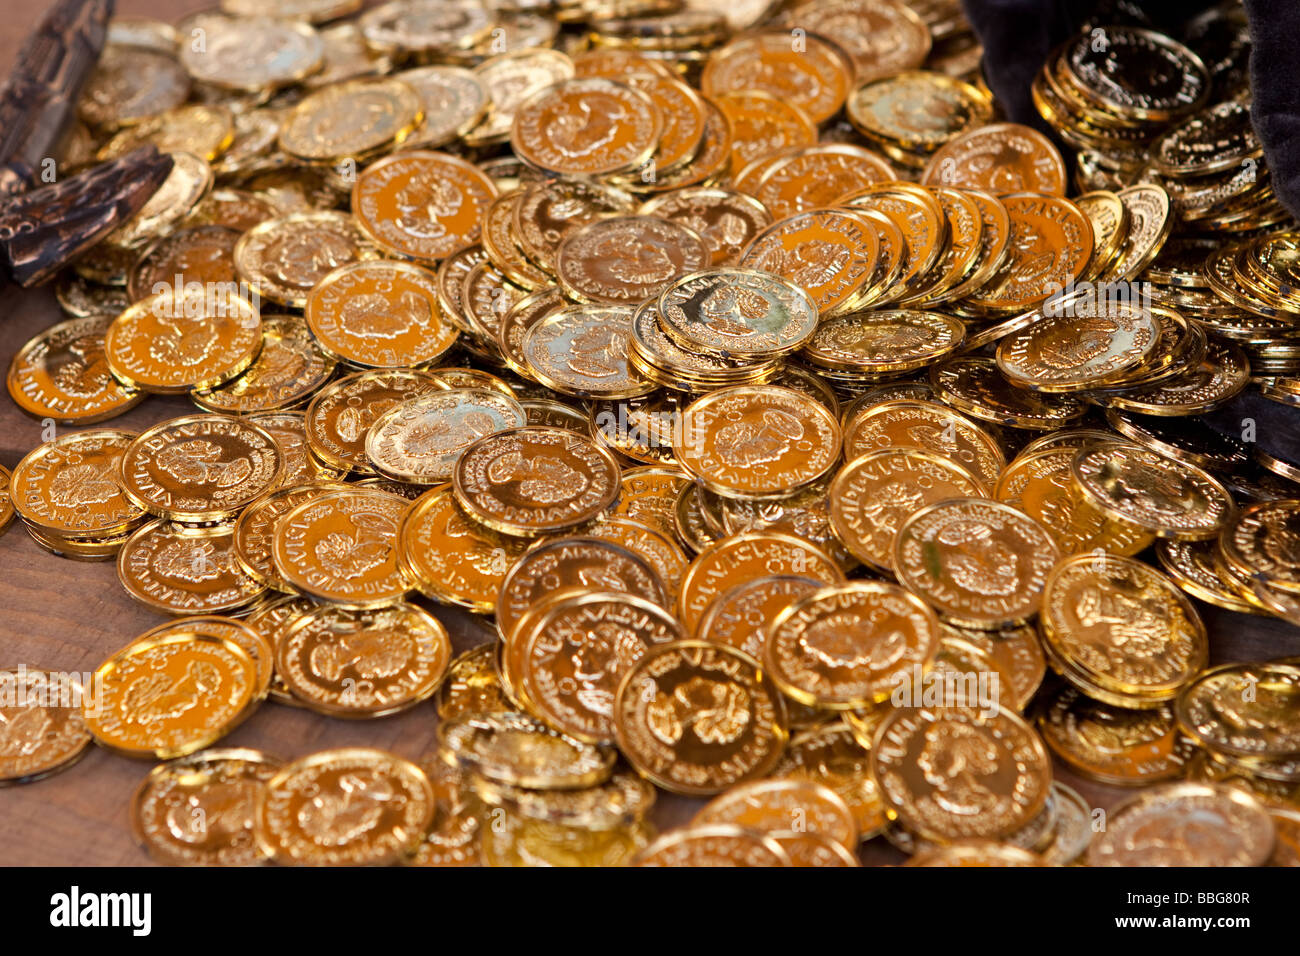 The pirate's Gold doubloons Stock Photo: 24329111 - Alamy